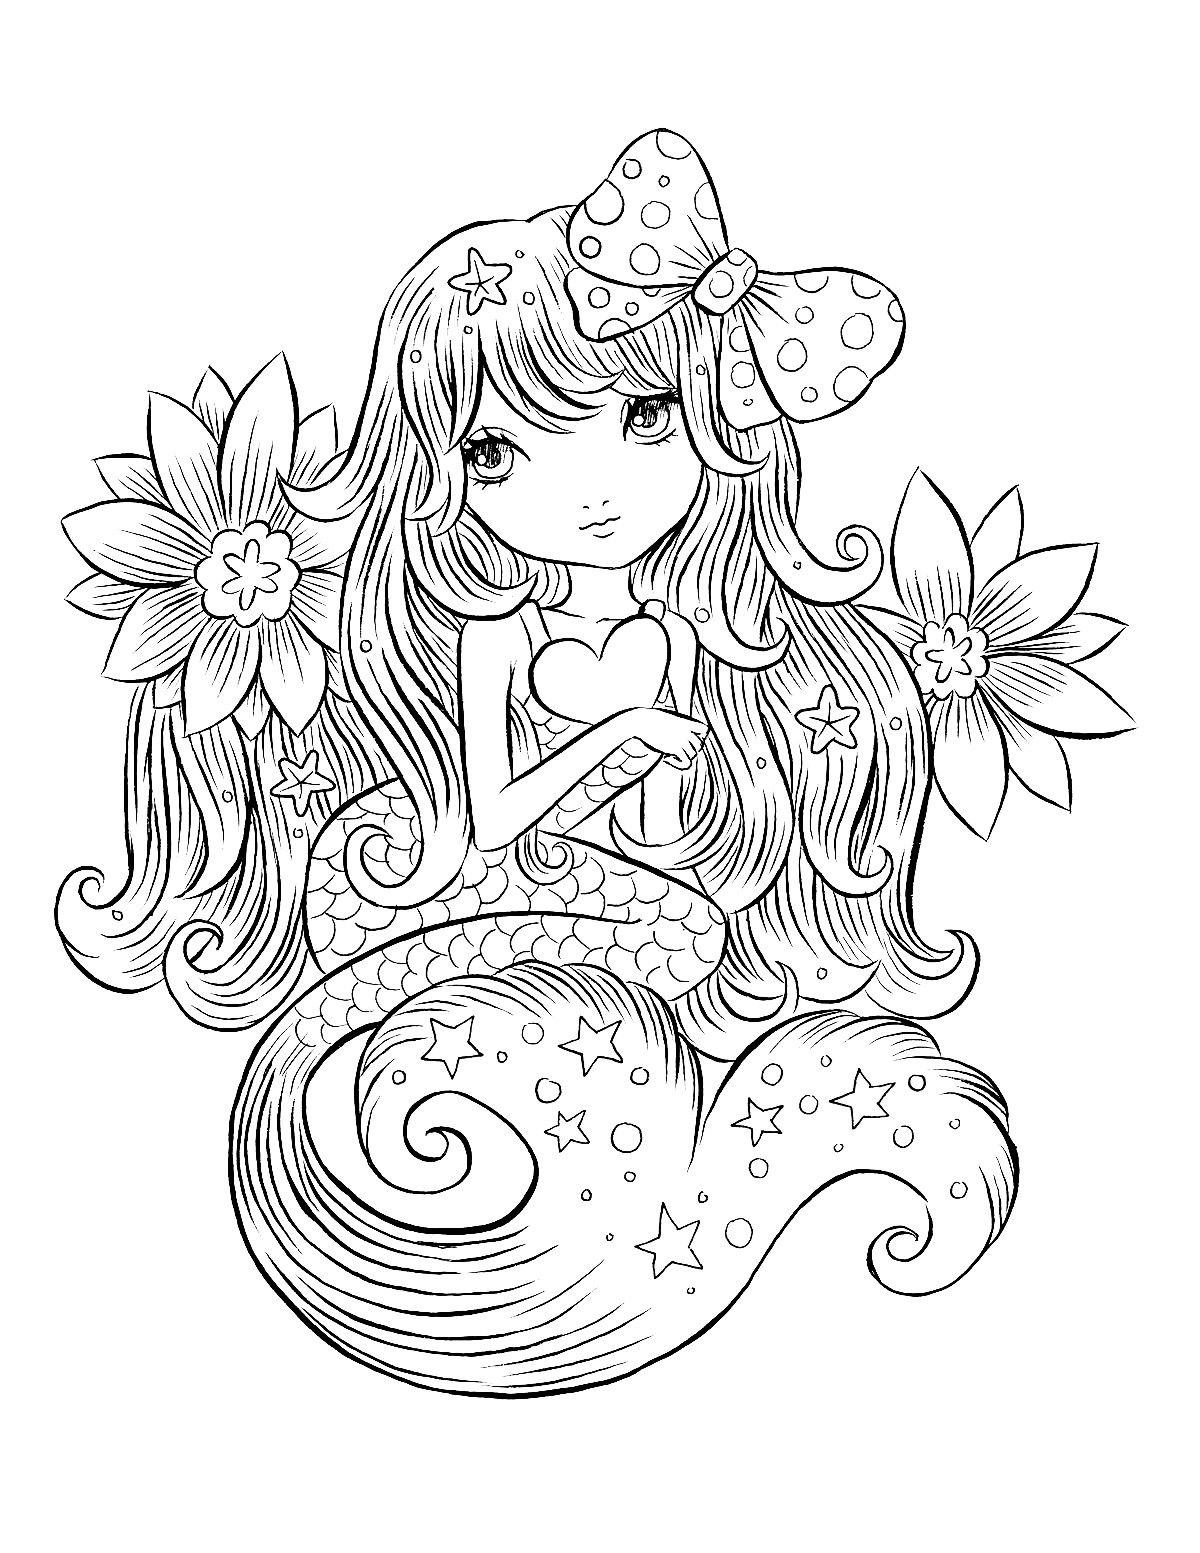 coloring page unicorn mermaid coloring page unicorn mermaid unicorn page mermaid coloring